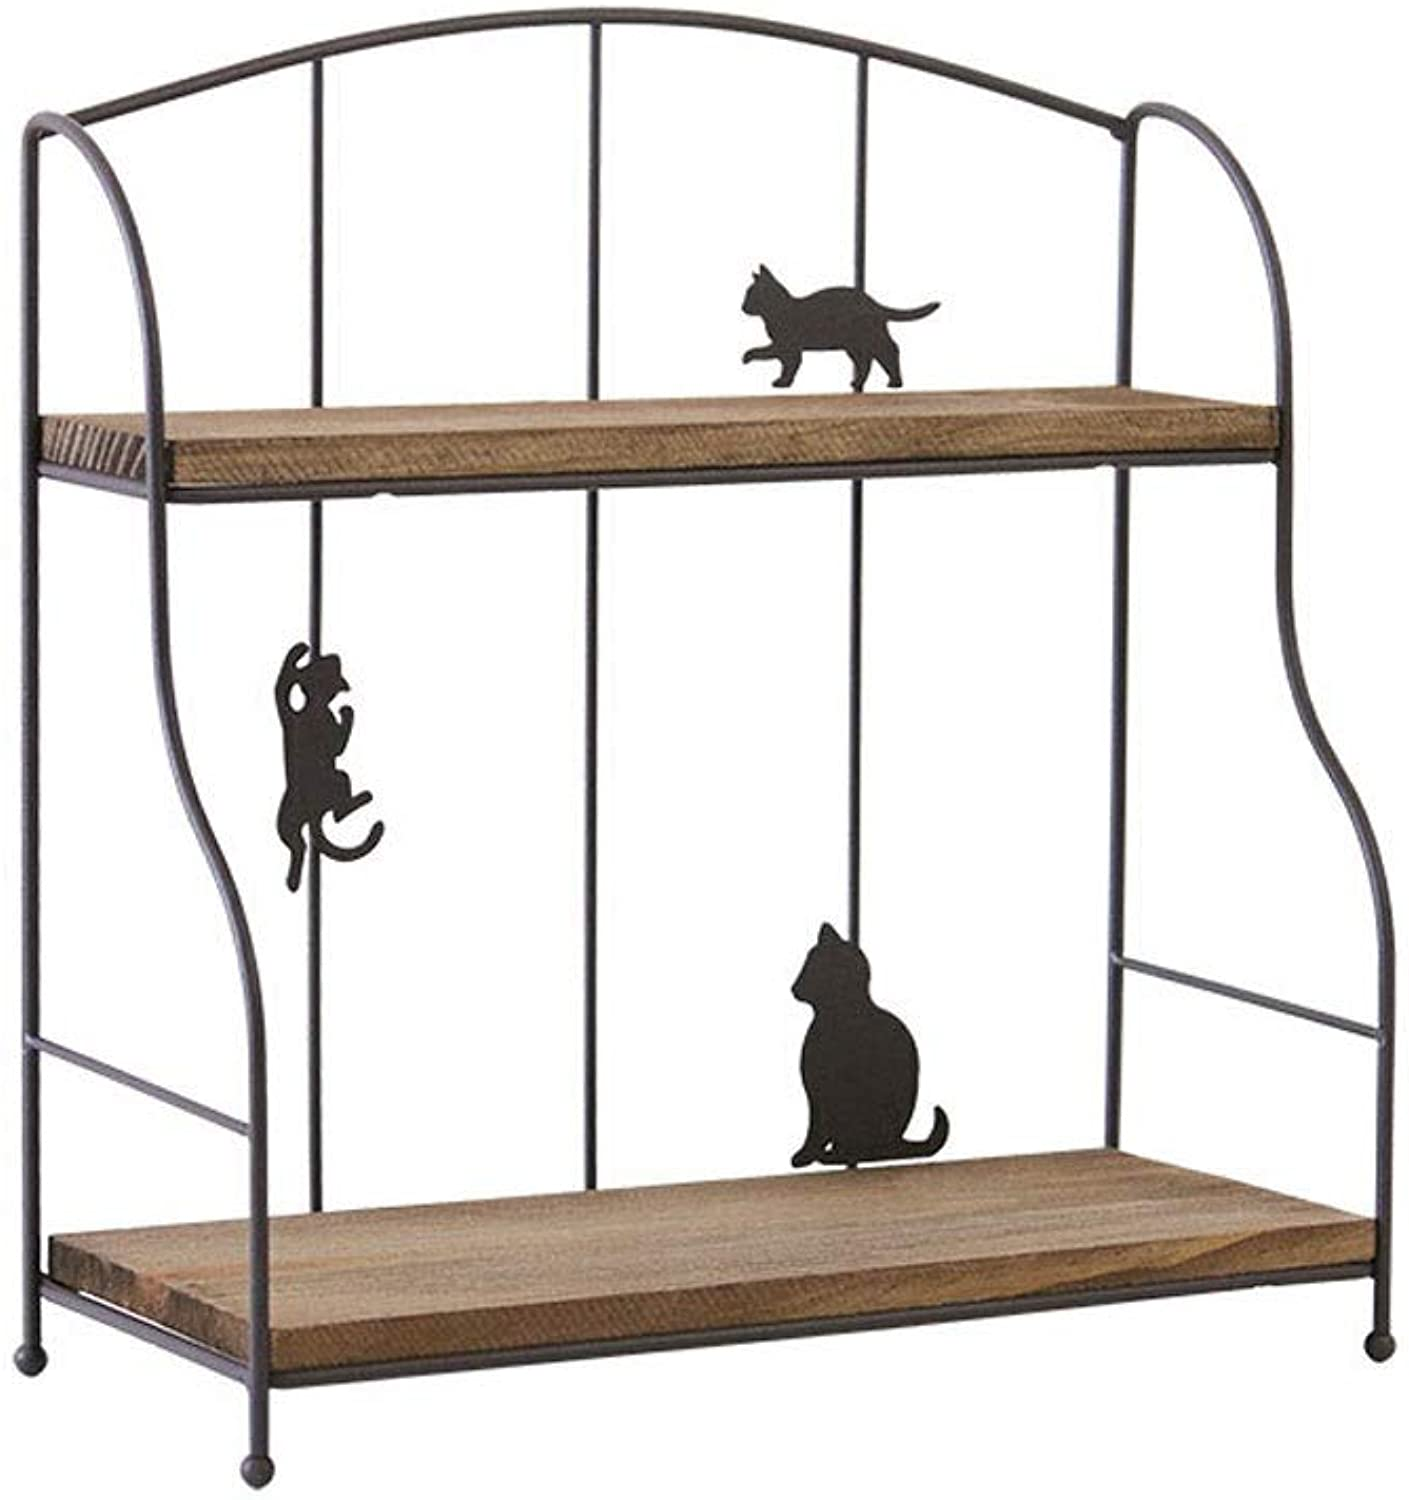 C-K-P Nordic Wrought Iron Storage Rack Desktop Shelf Double Desk (color   Brown)